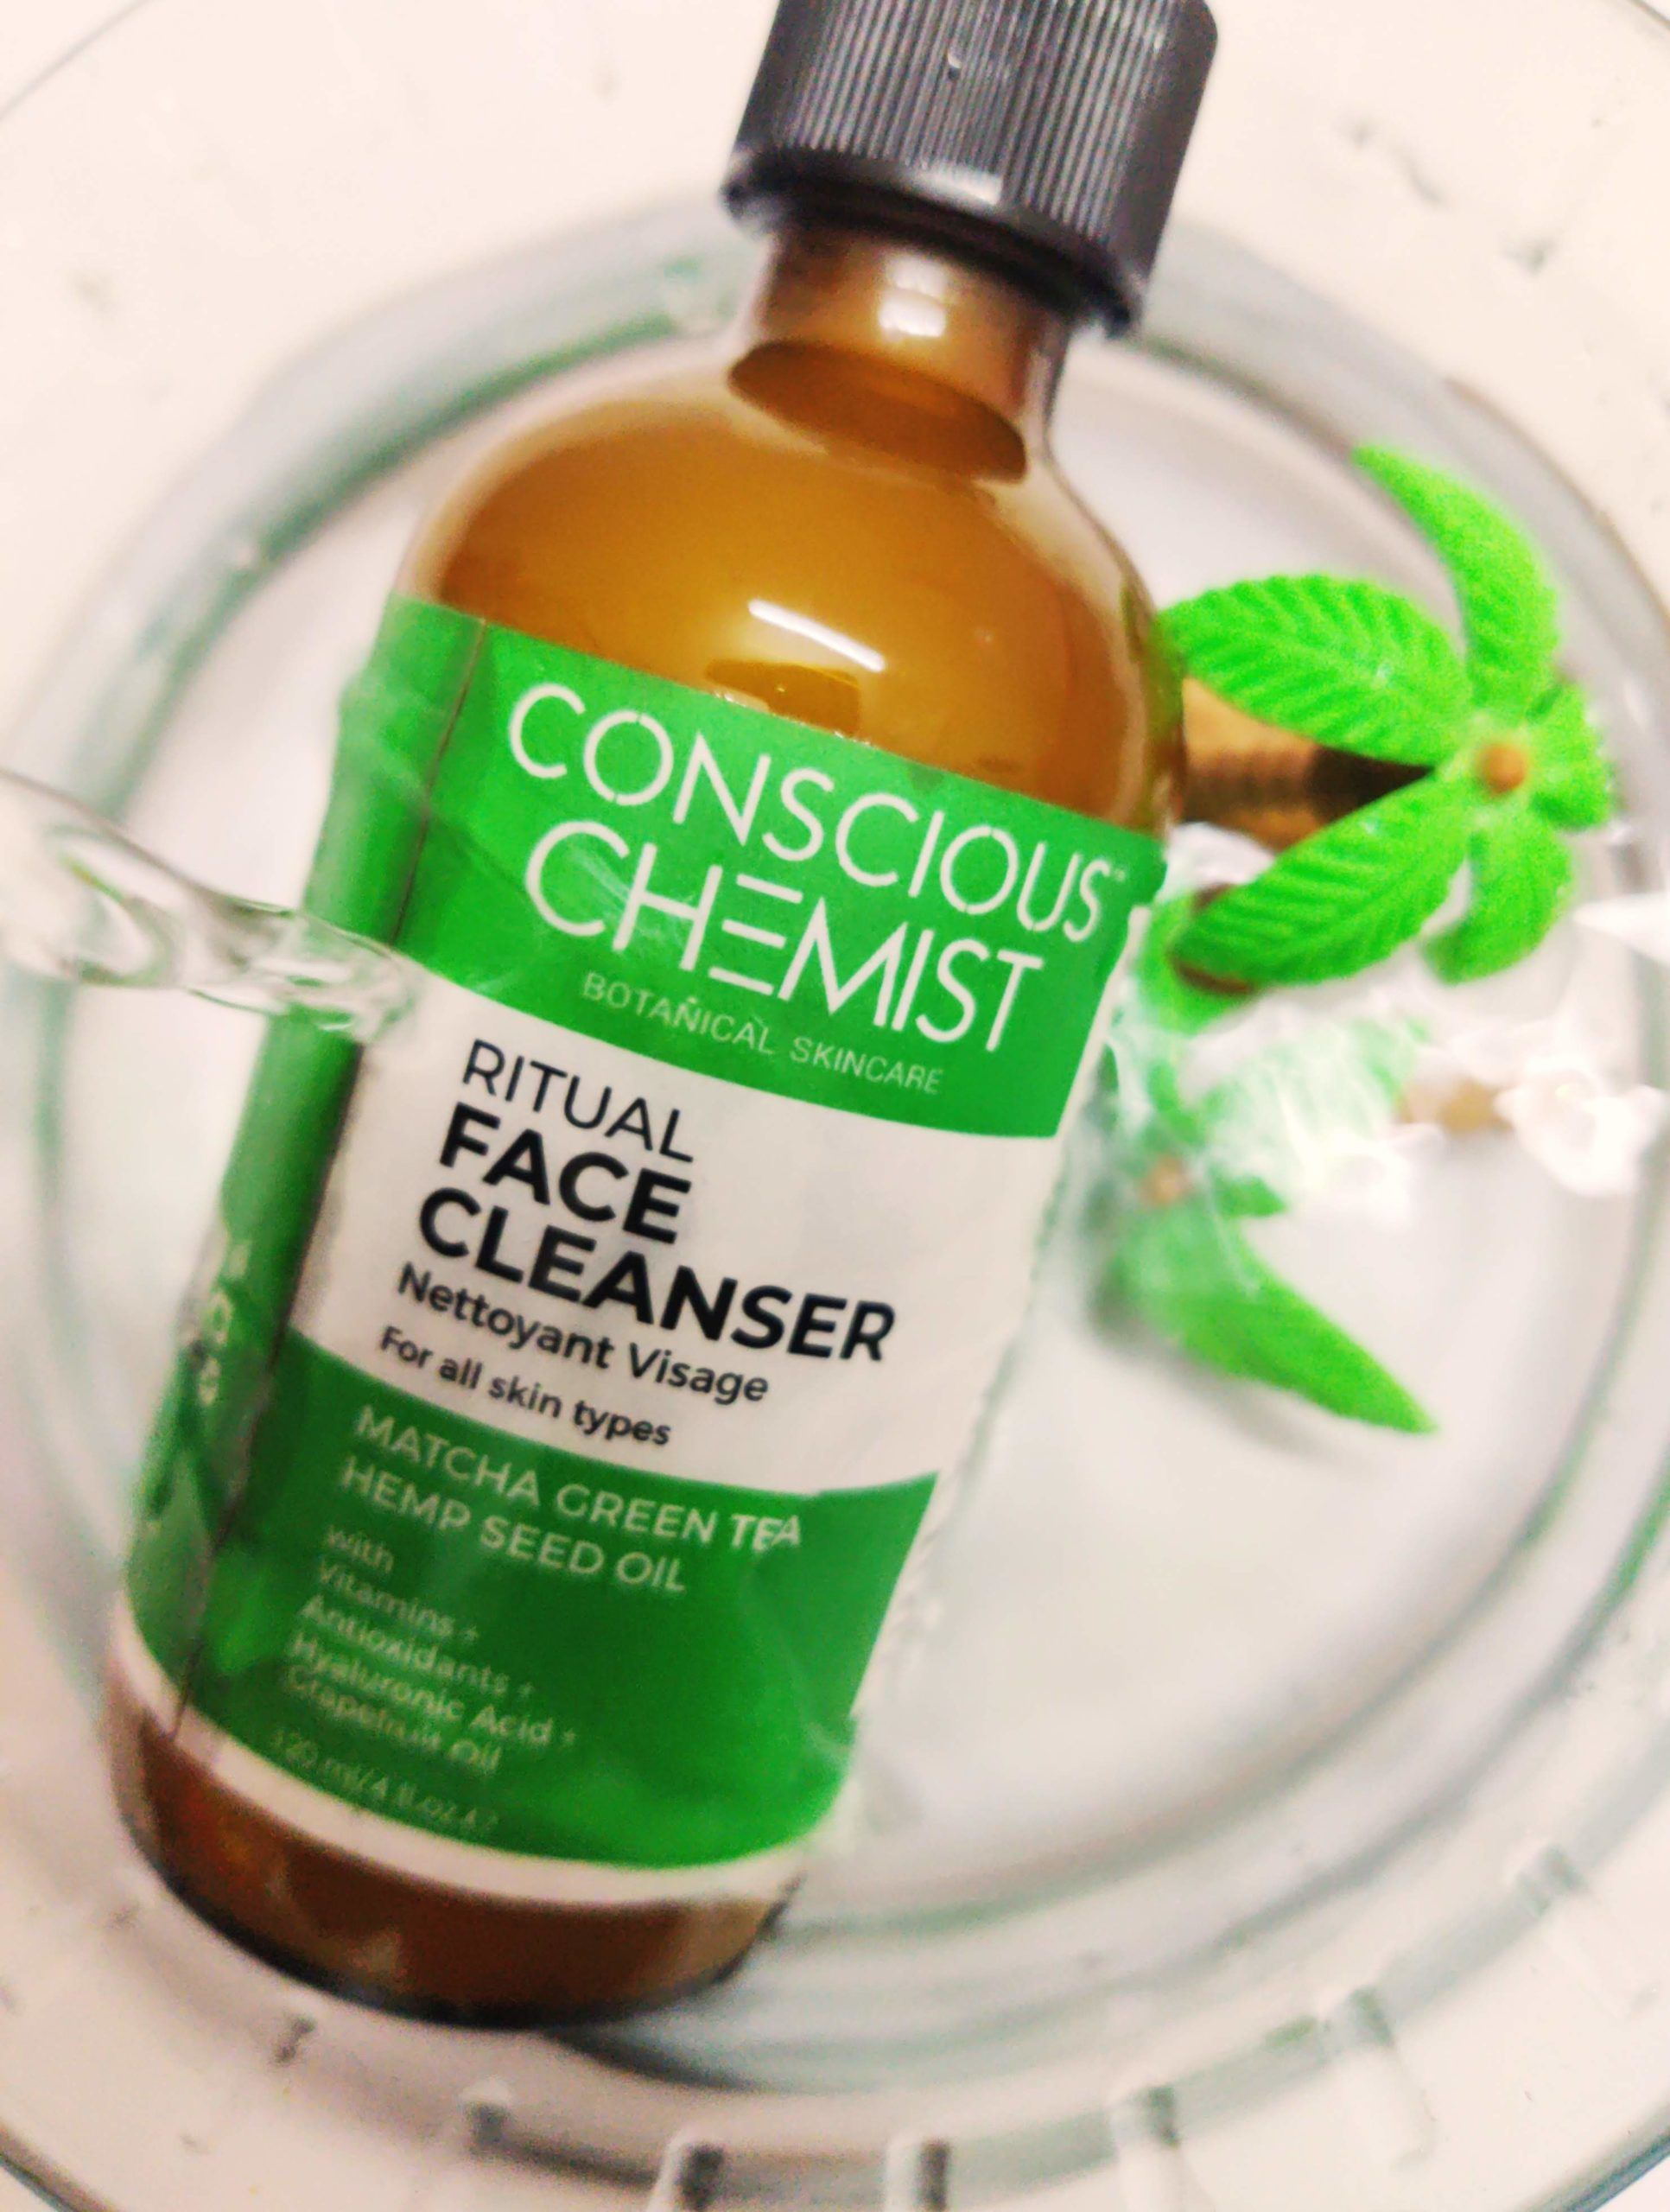 Conscious Chemist ritual face cleanser is packed with